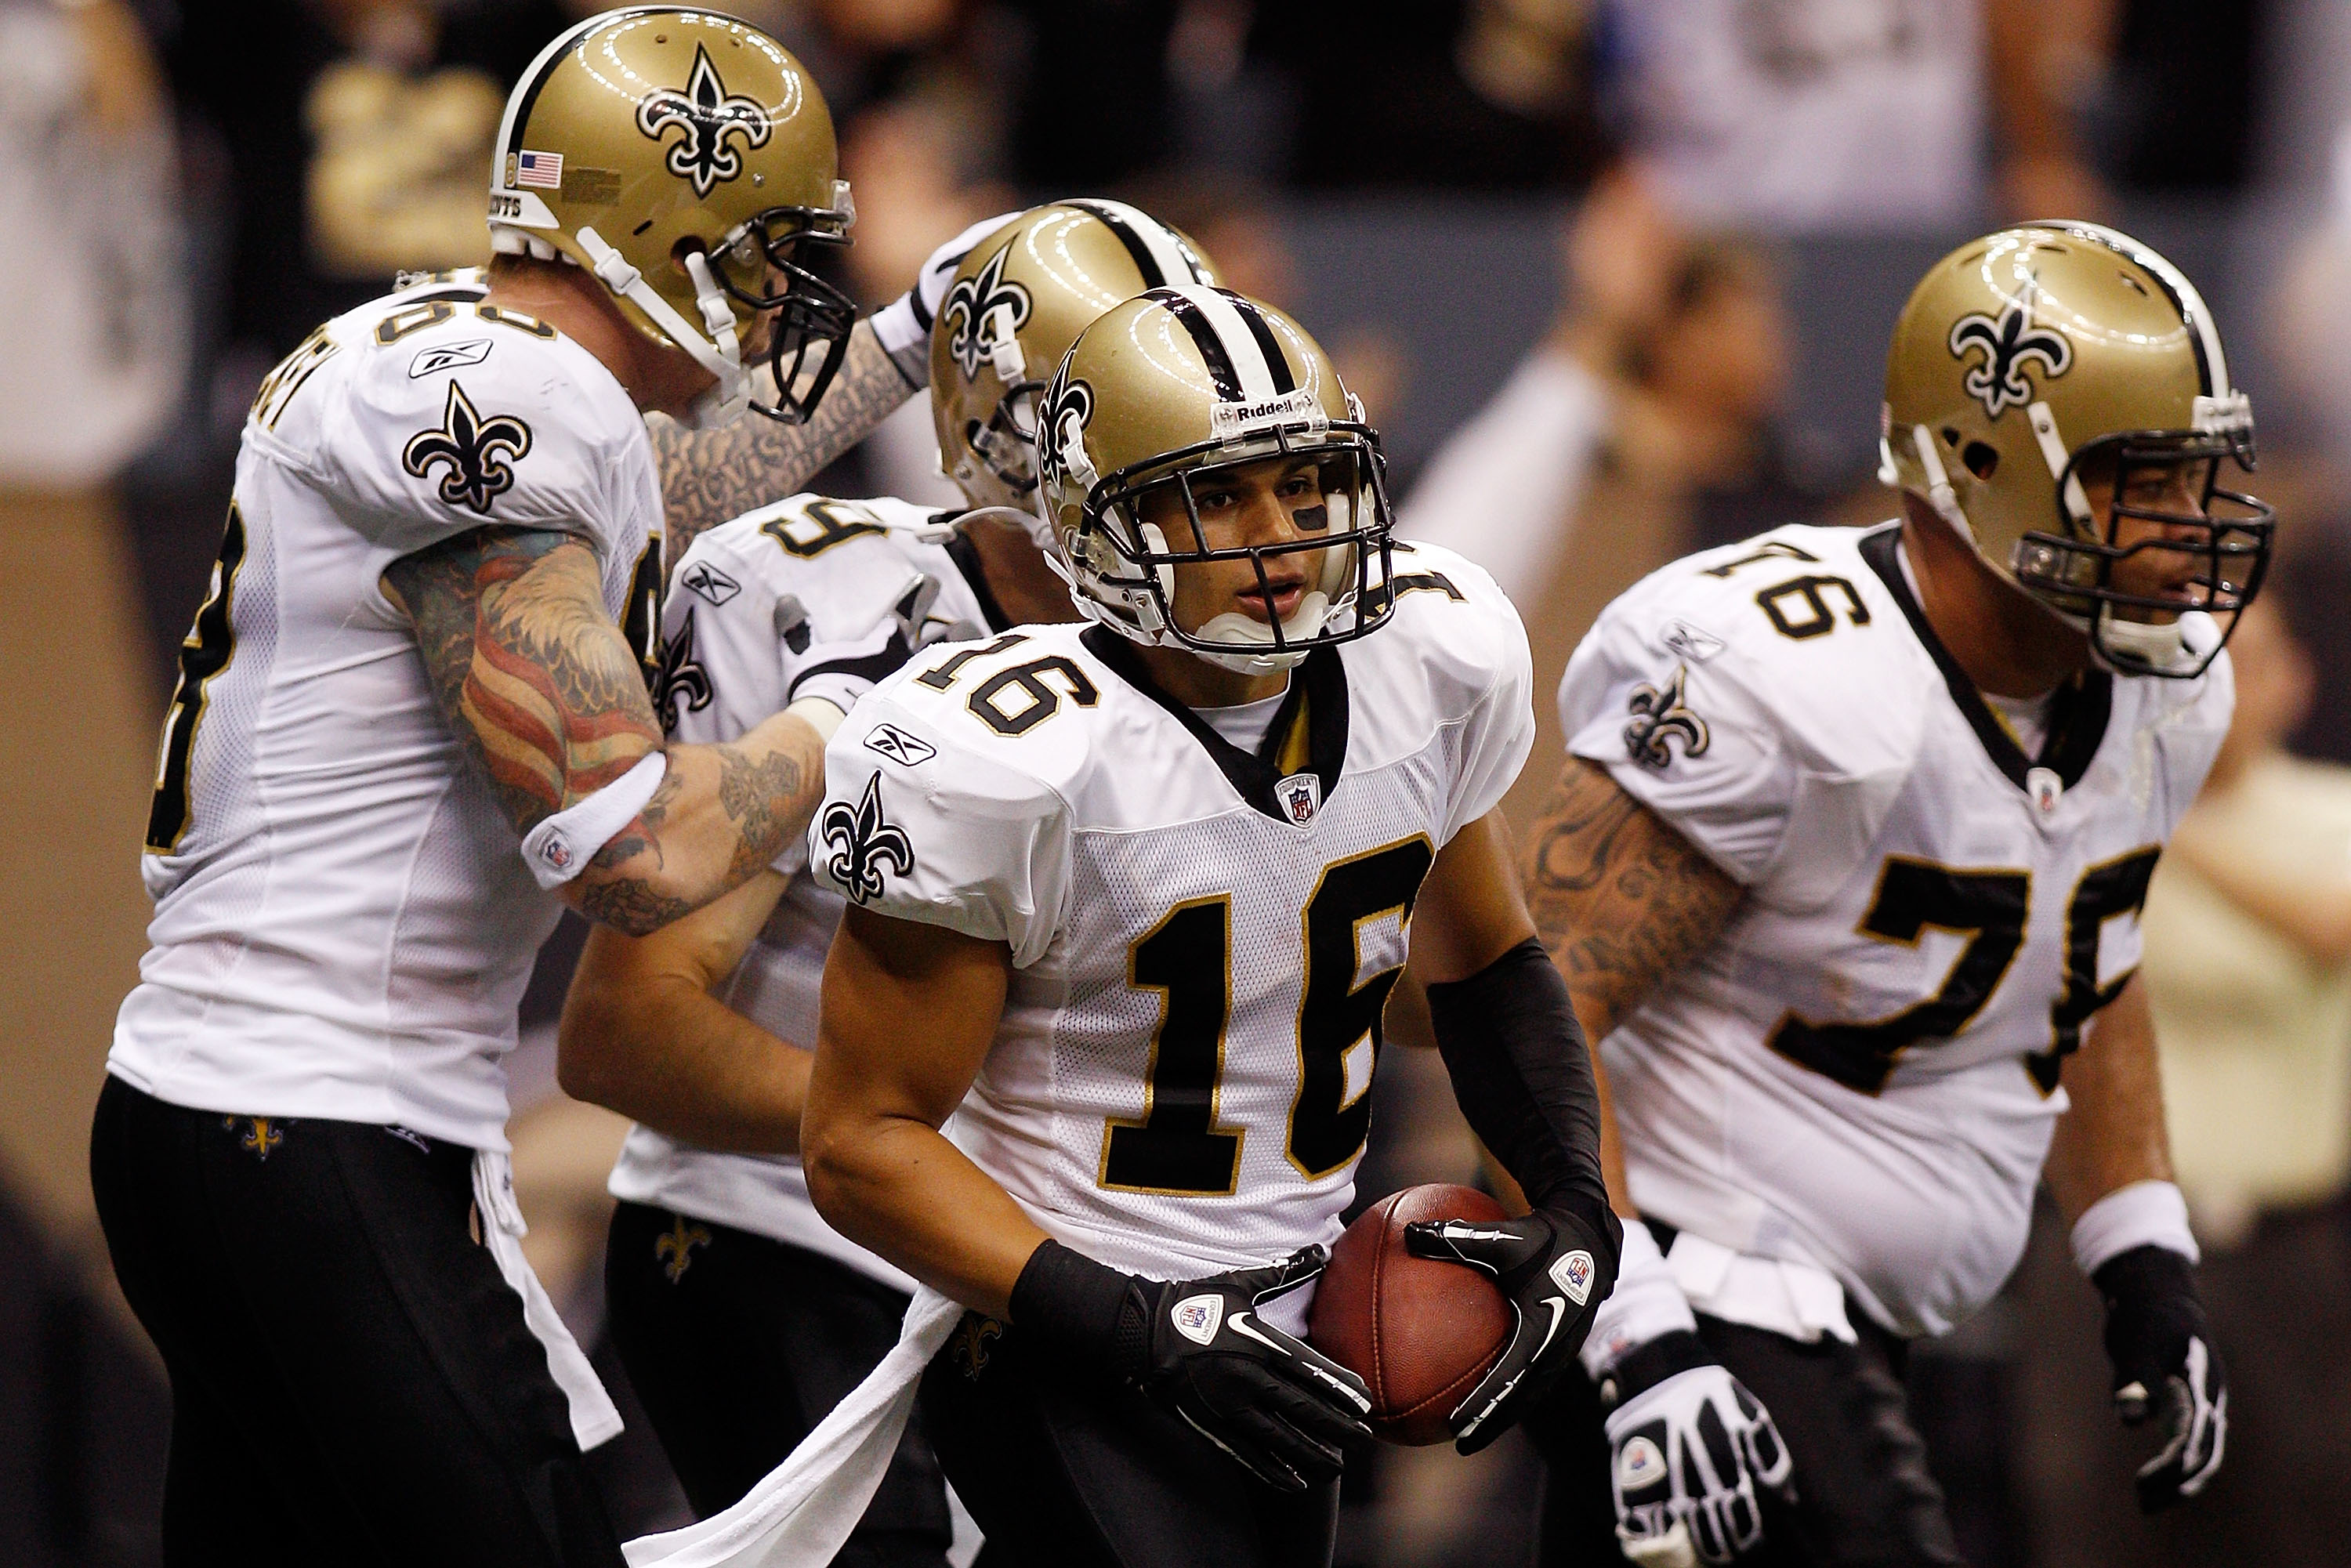 NEW ORLEANS - SEPTEMBER 26:  Lance Moore #16 of the New Orleans Saints celebrates after scoring a touchdown against the Atlanta Falcons at the Louisiana Superdome on September 26, 2010 in New Orleans, Louisiana.  (Photo by Chris Graythen/Getty Images)